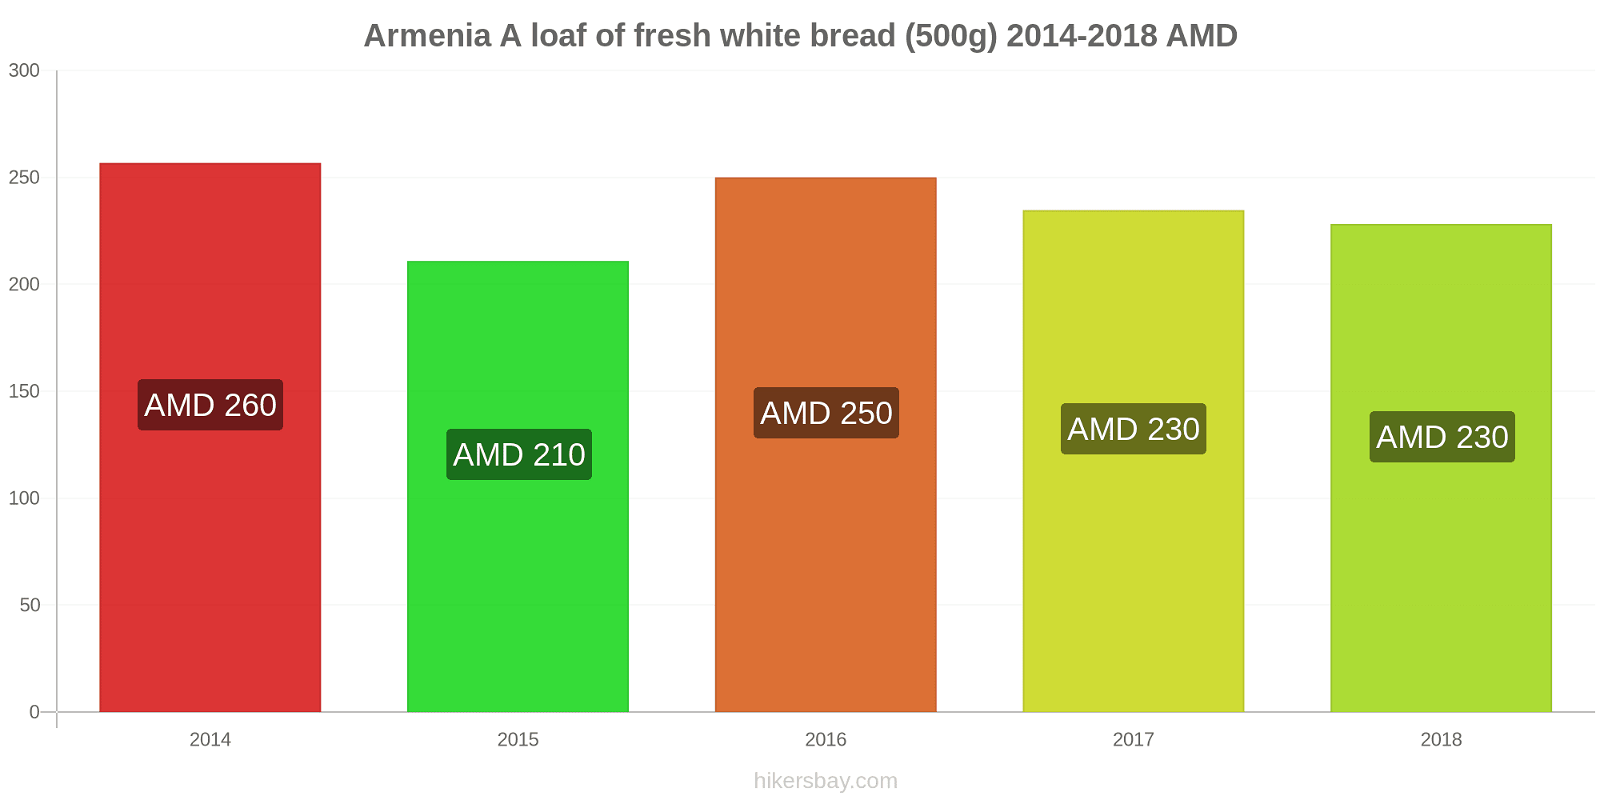 Armenia price changes A loaf of fresh white bread (500g) hikersbay.com